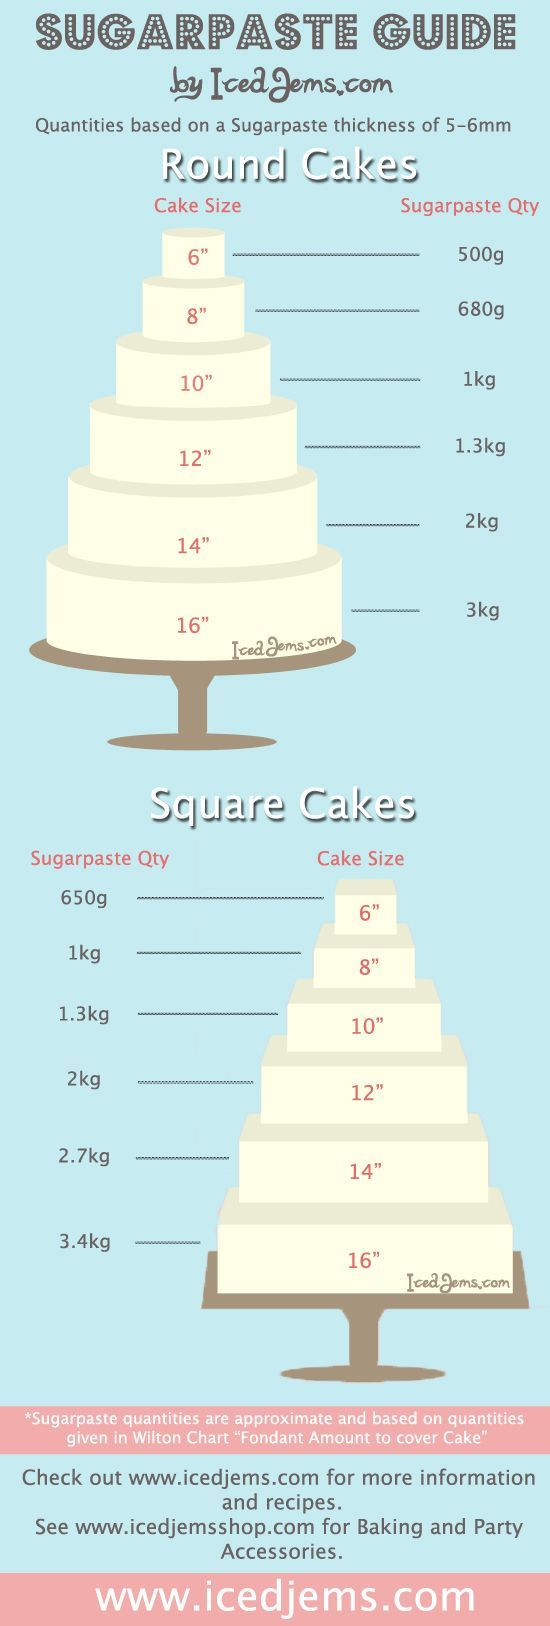 How much Sugarpaste / Fondant you need to cover a cake.: